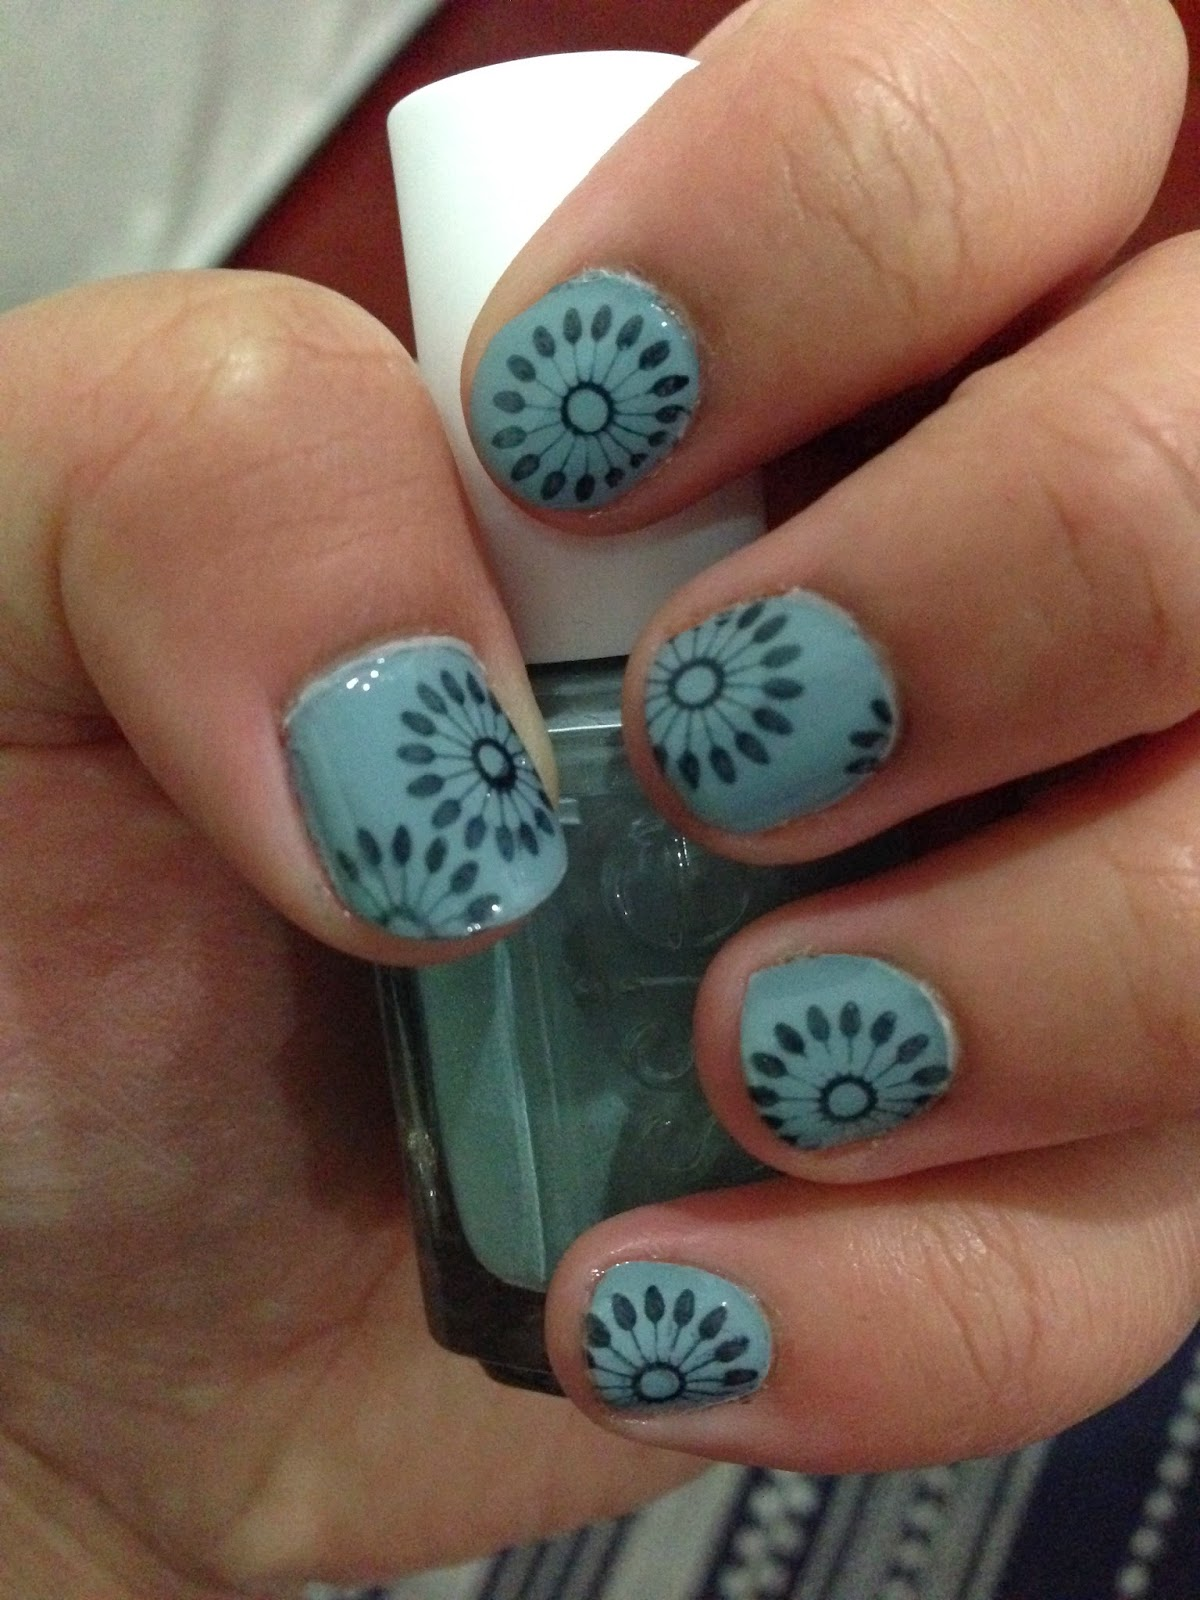 Essie Parka Perfect (855) with nail art stamping (indie floral design)